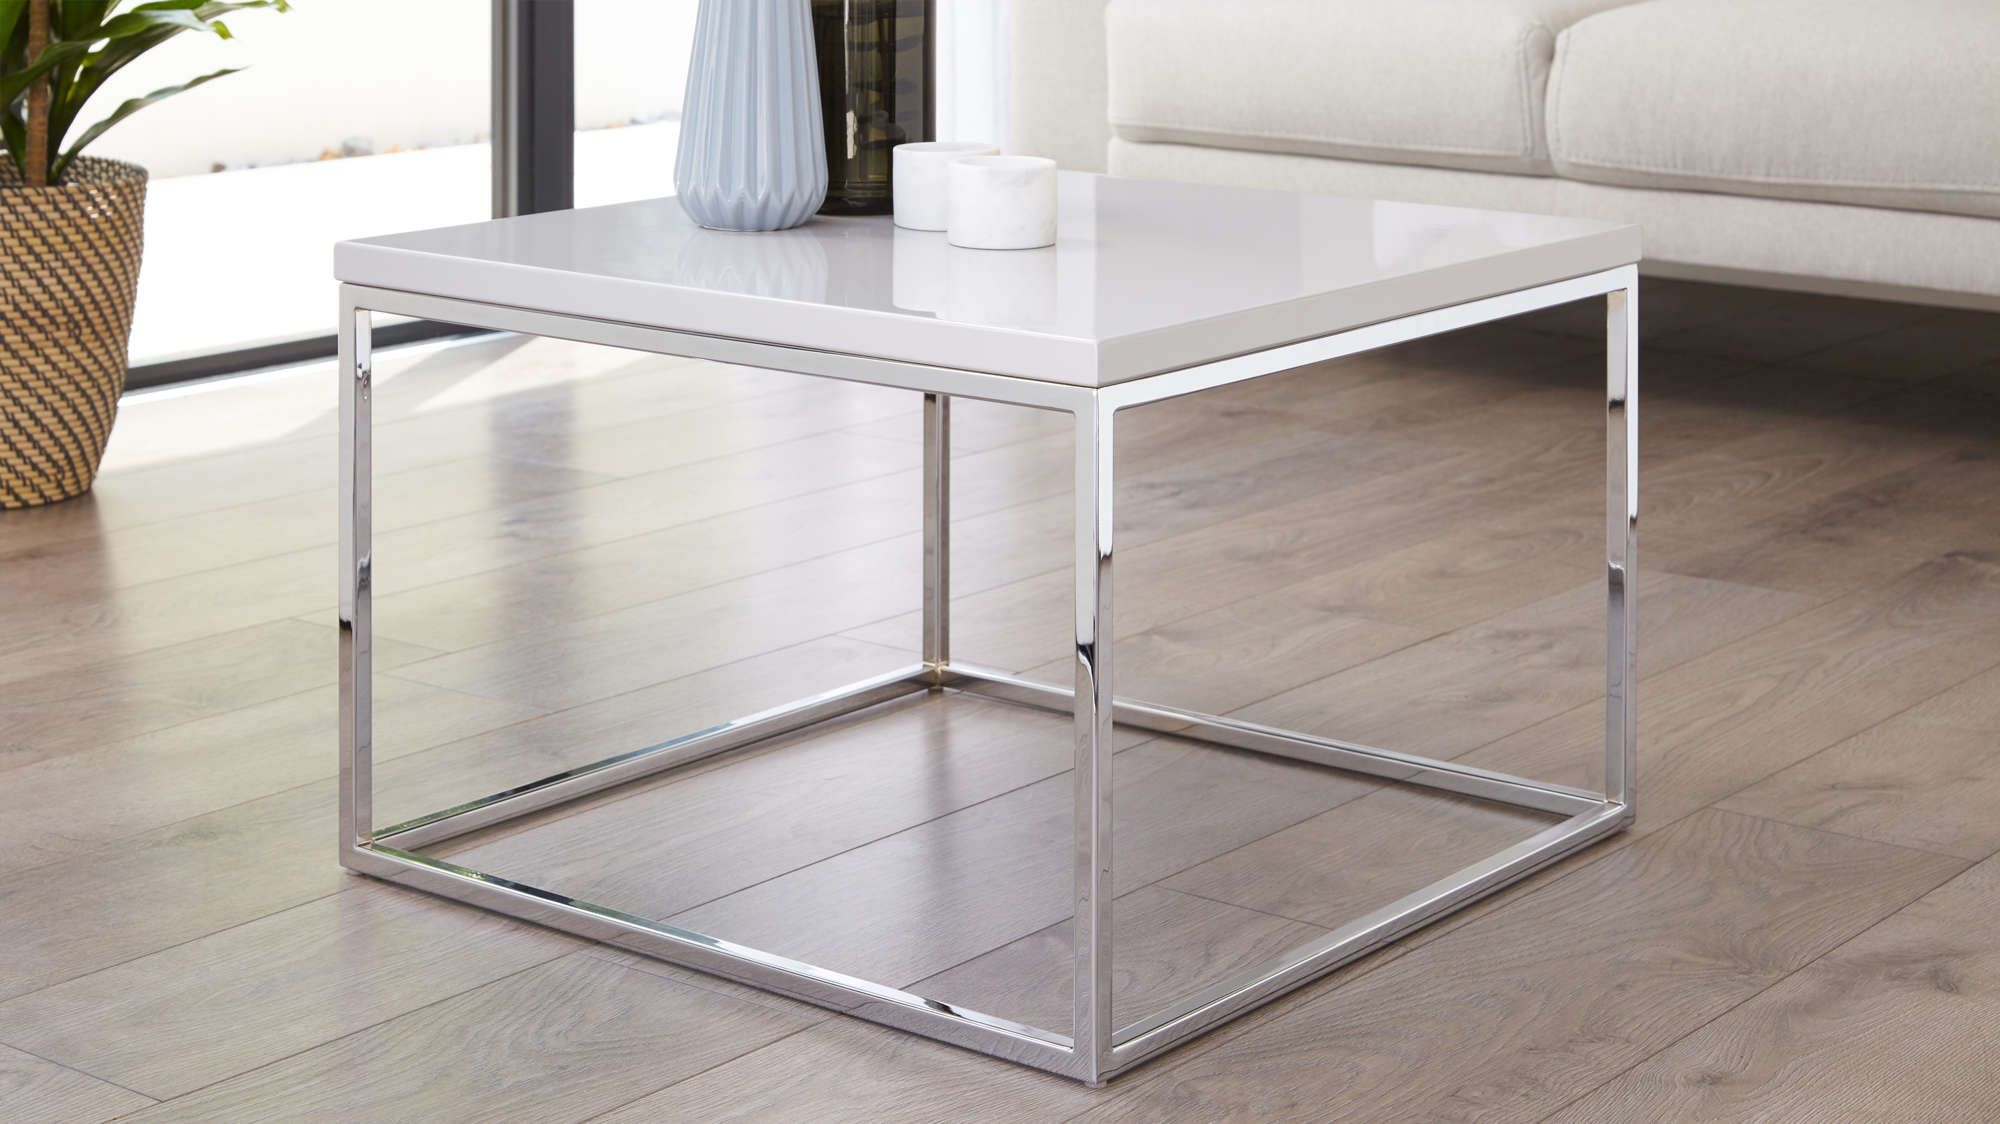 Acute Grey Gloss And Chrome Square Coffee Table Contemporary Coffee Table Coffee Table With Storage Table